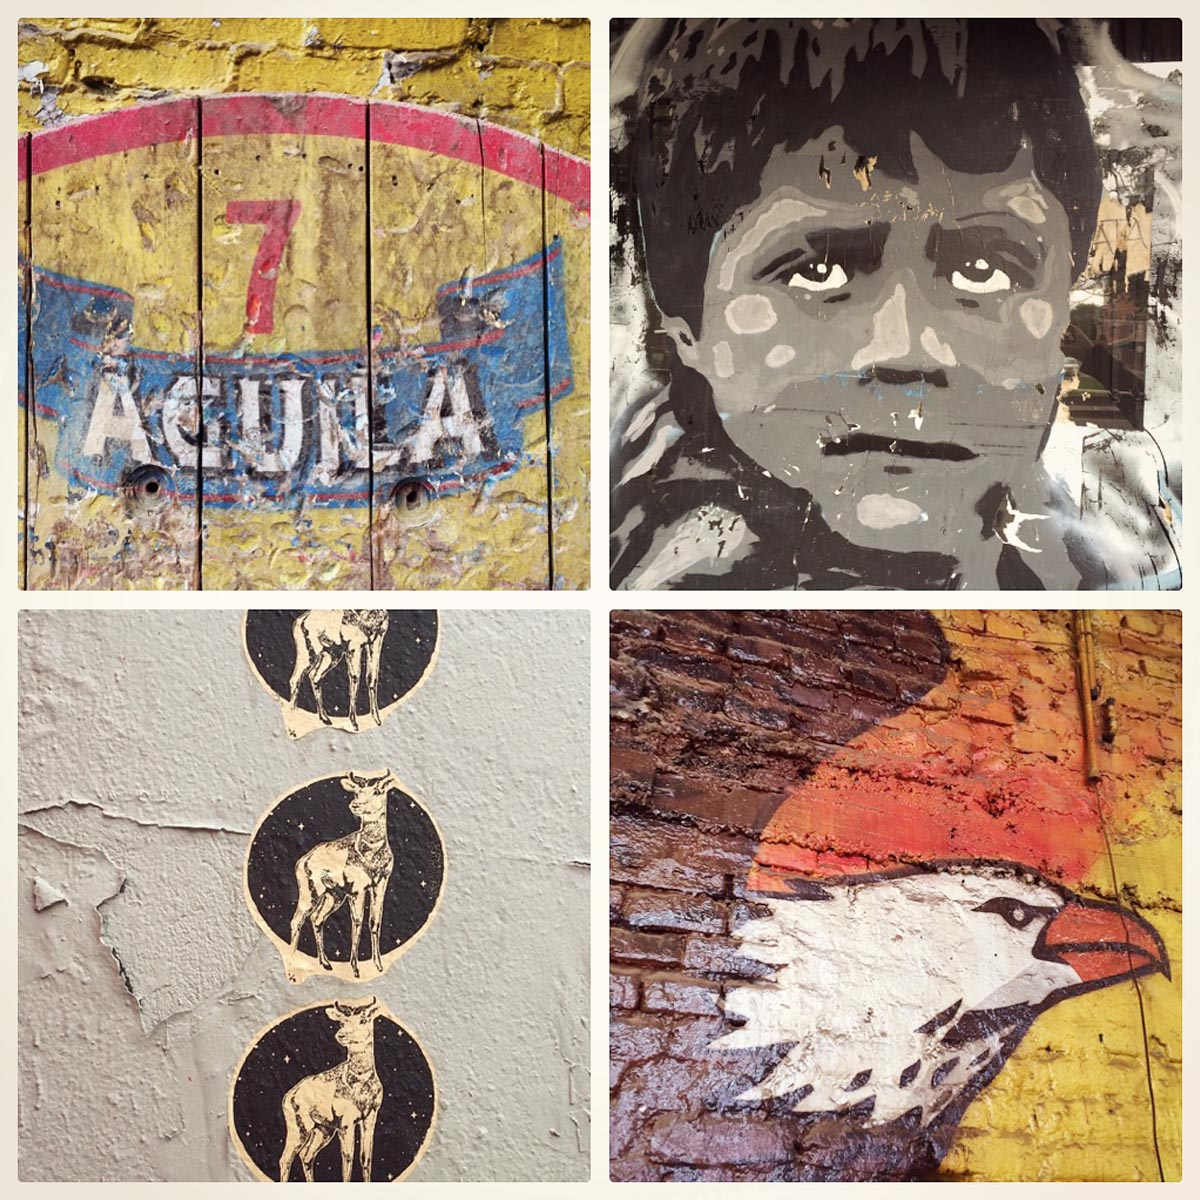 Wall art on the streets of Bogota, Colombia